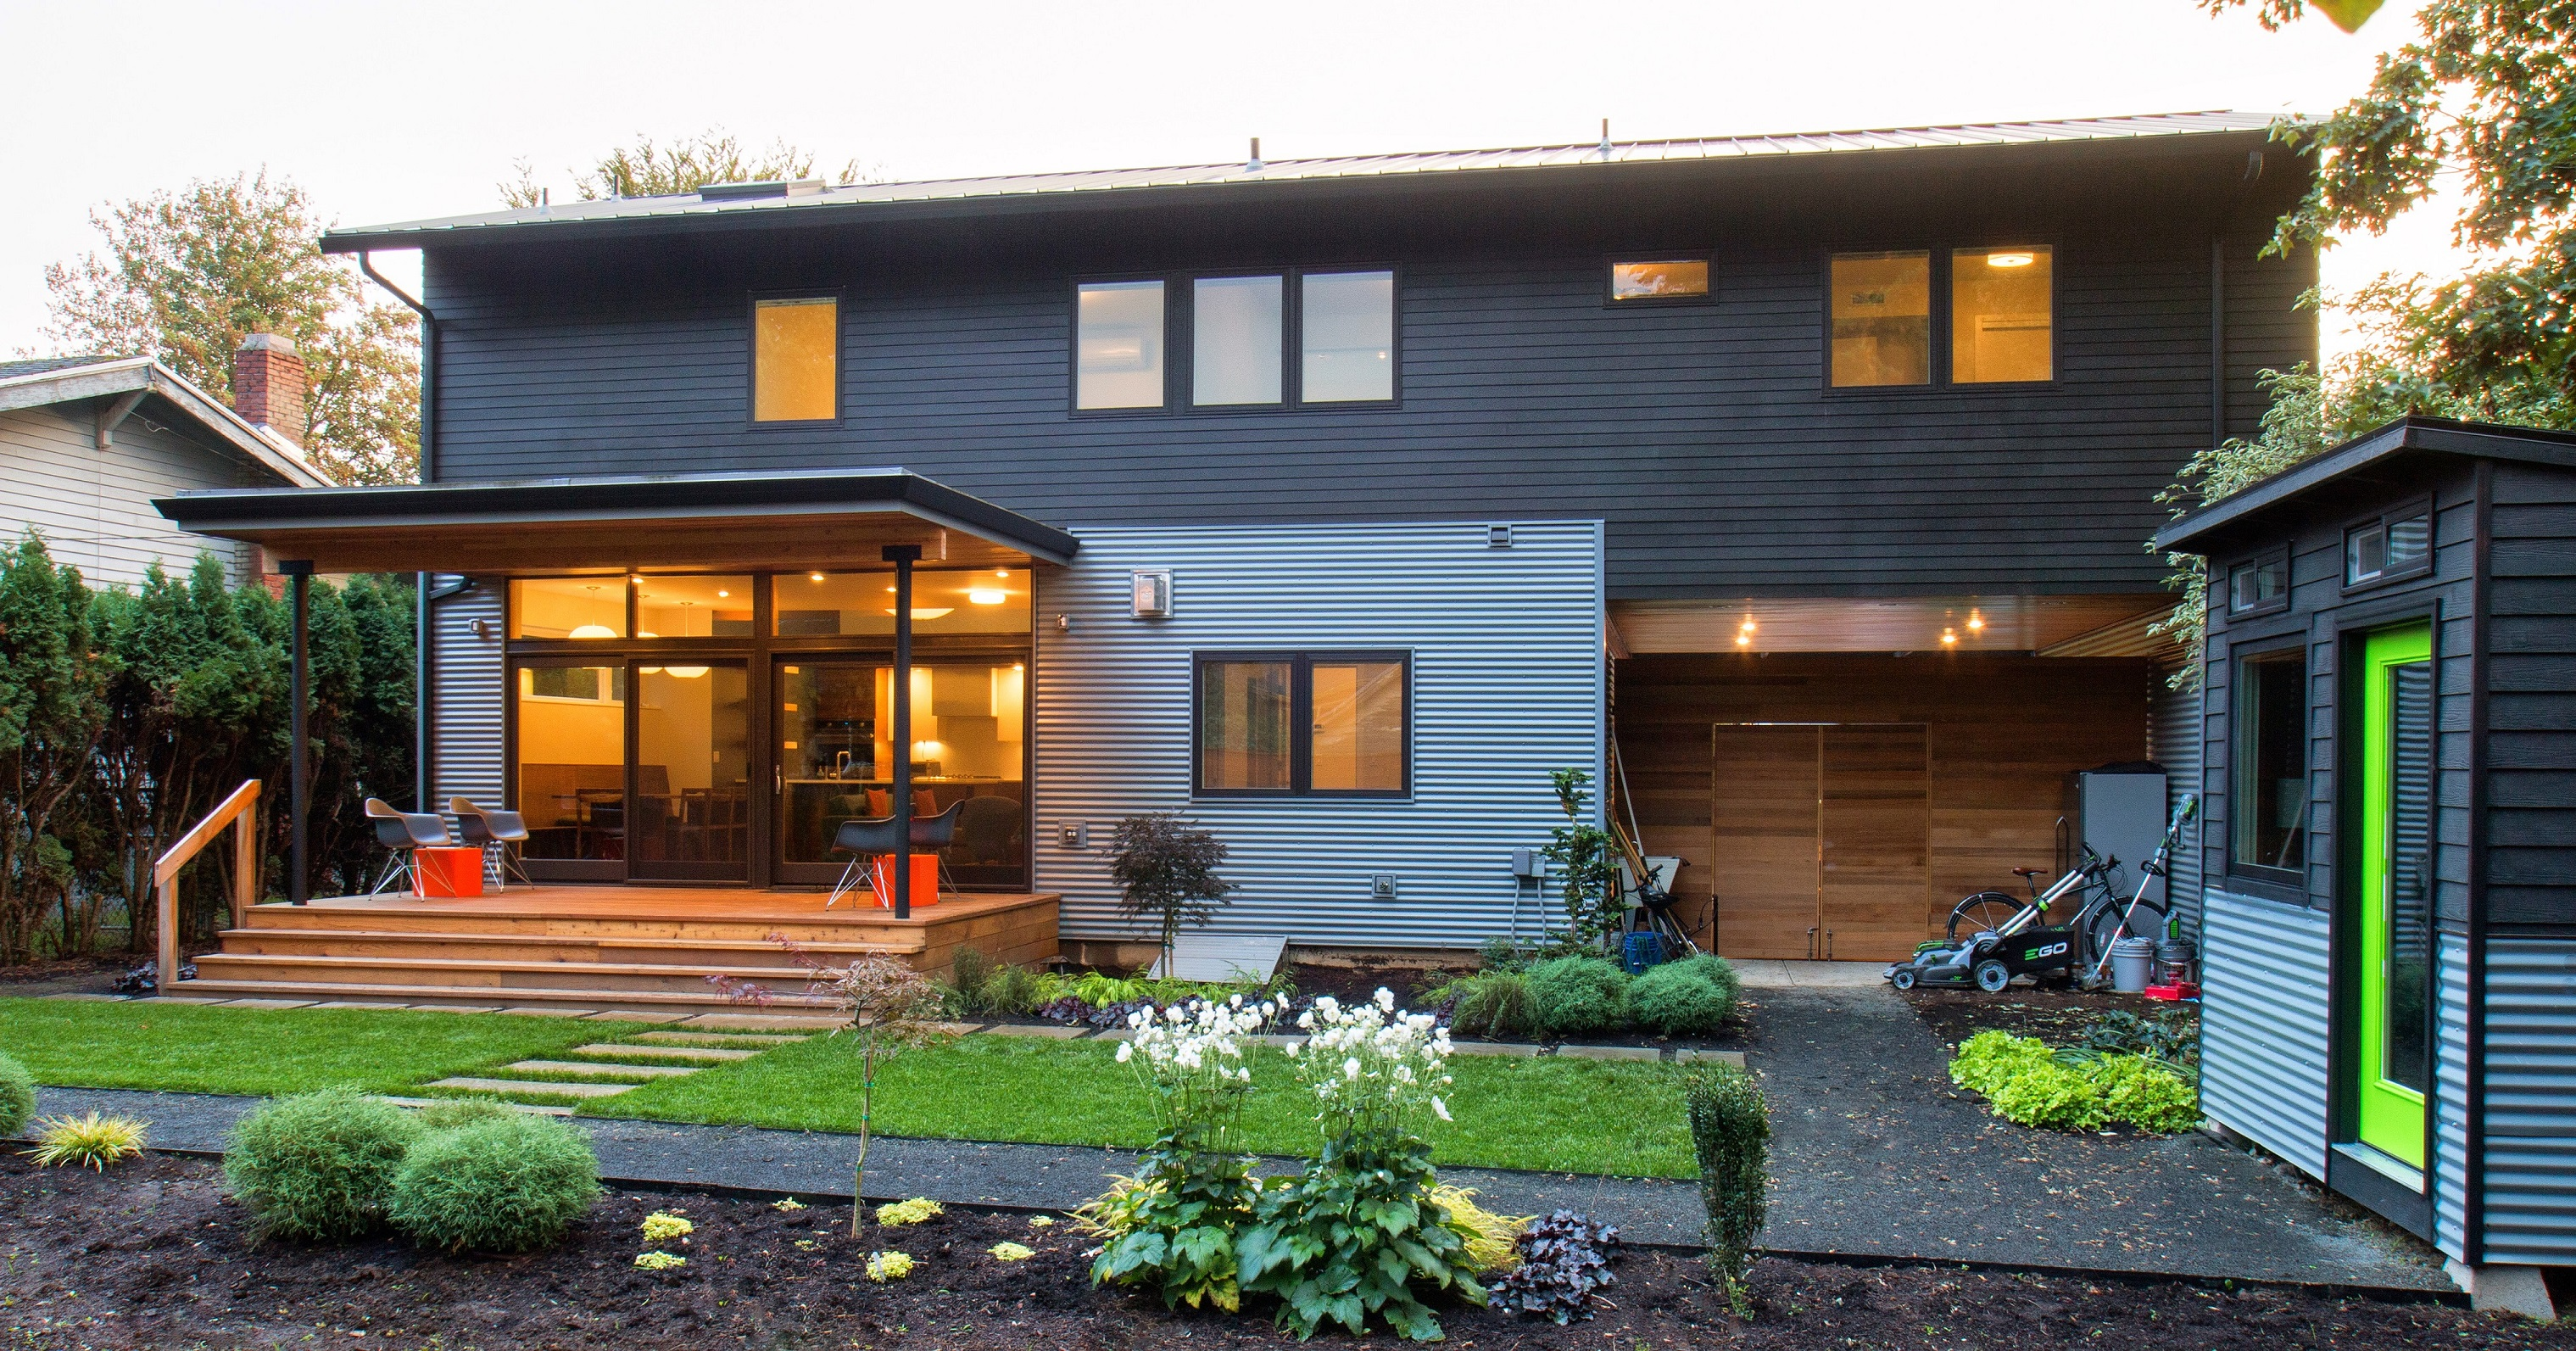 Get an inside look at eight amazing modern homes in Modern house portland